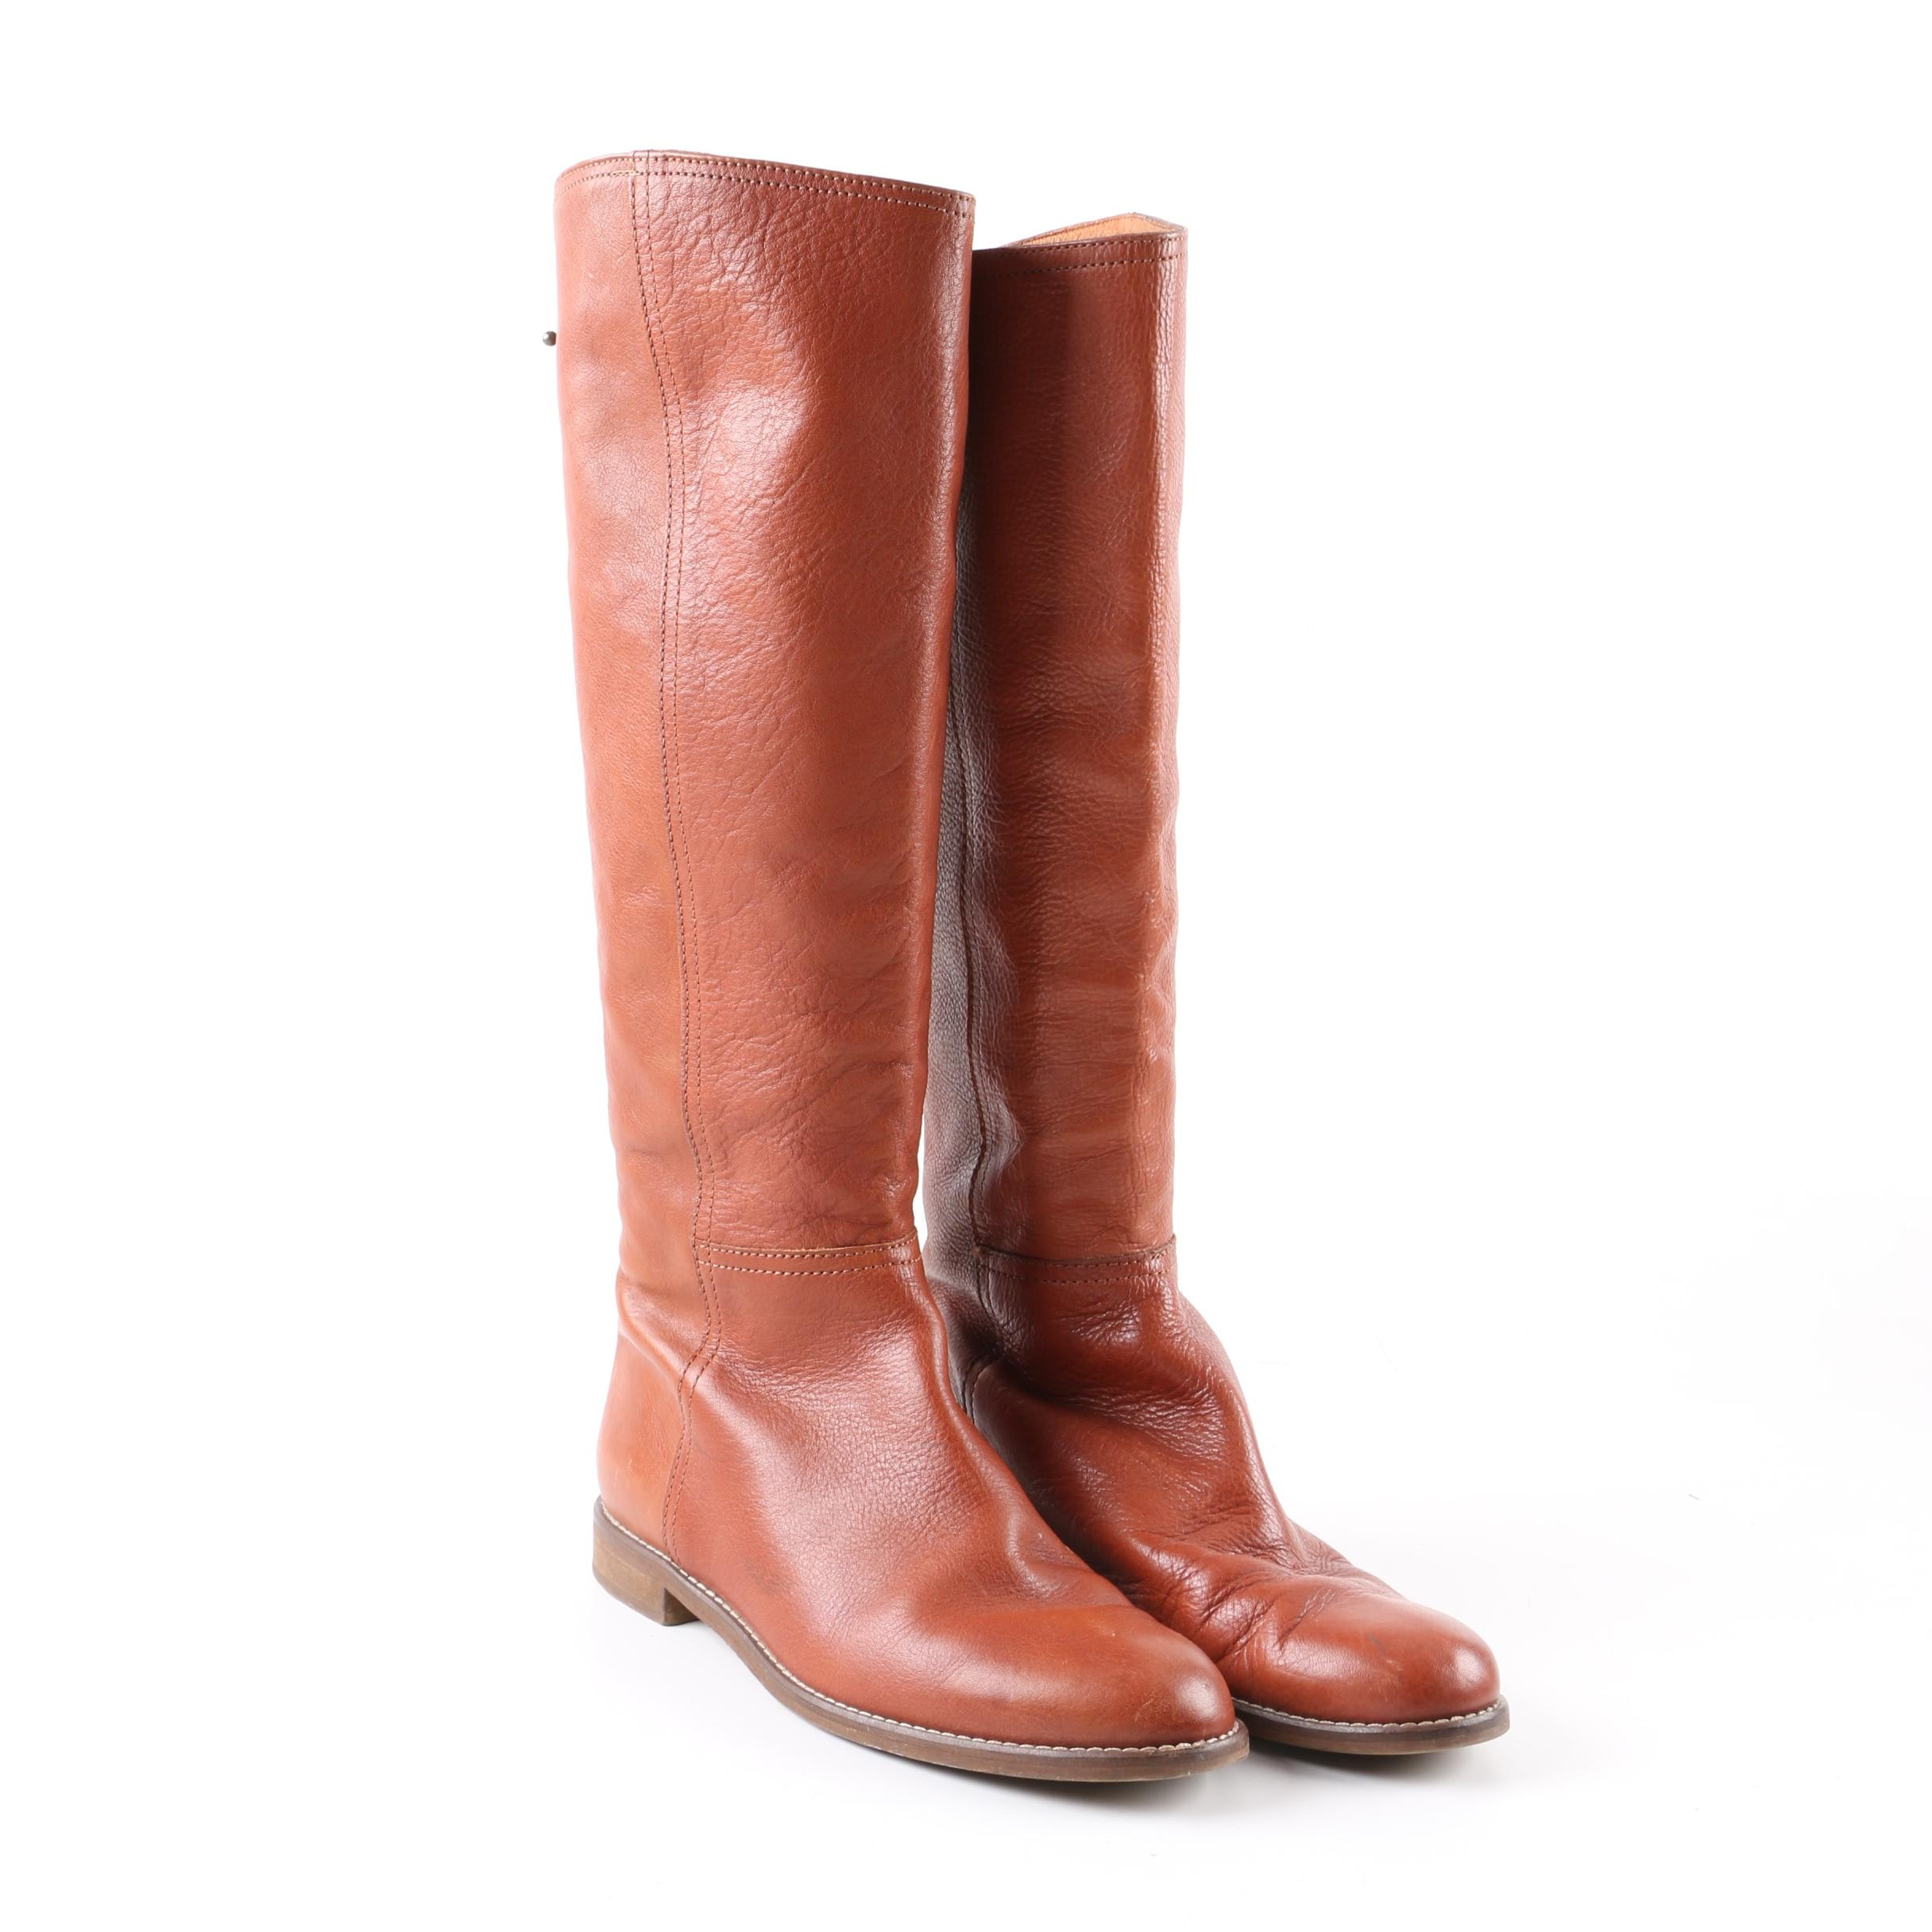 Madewell Knee-High Brown Leather Boots